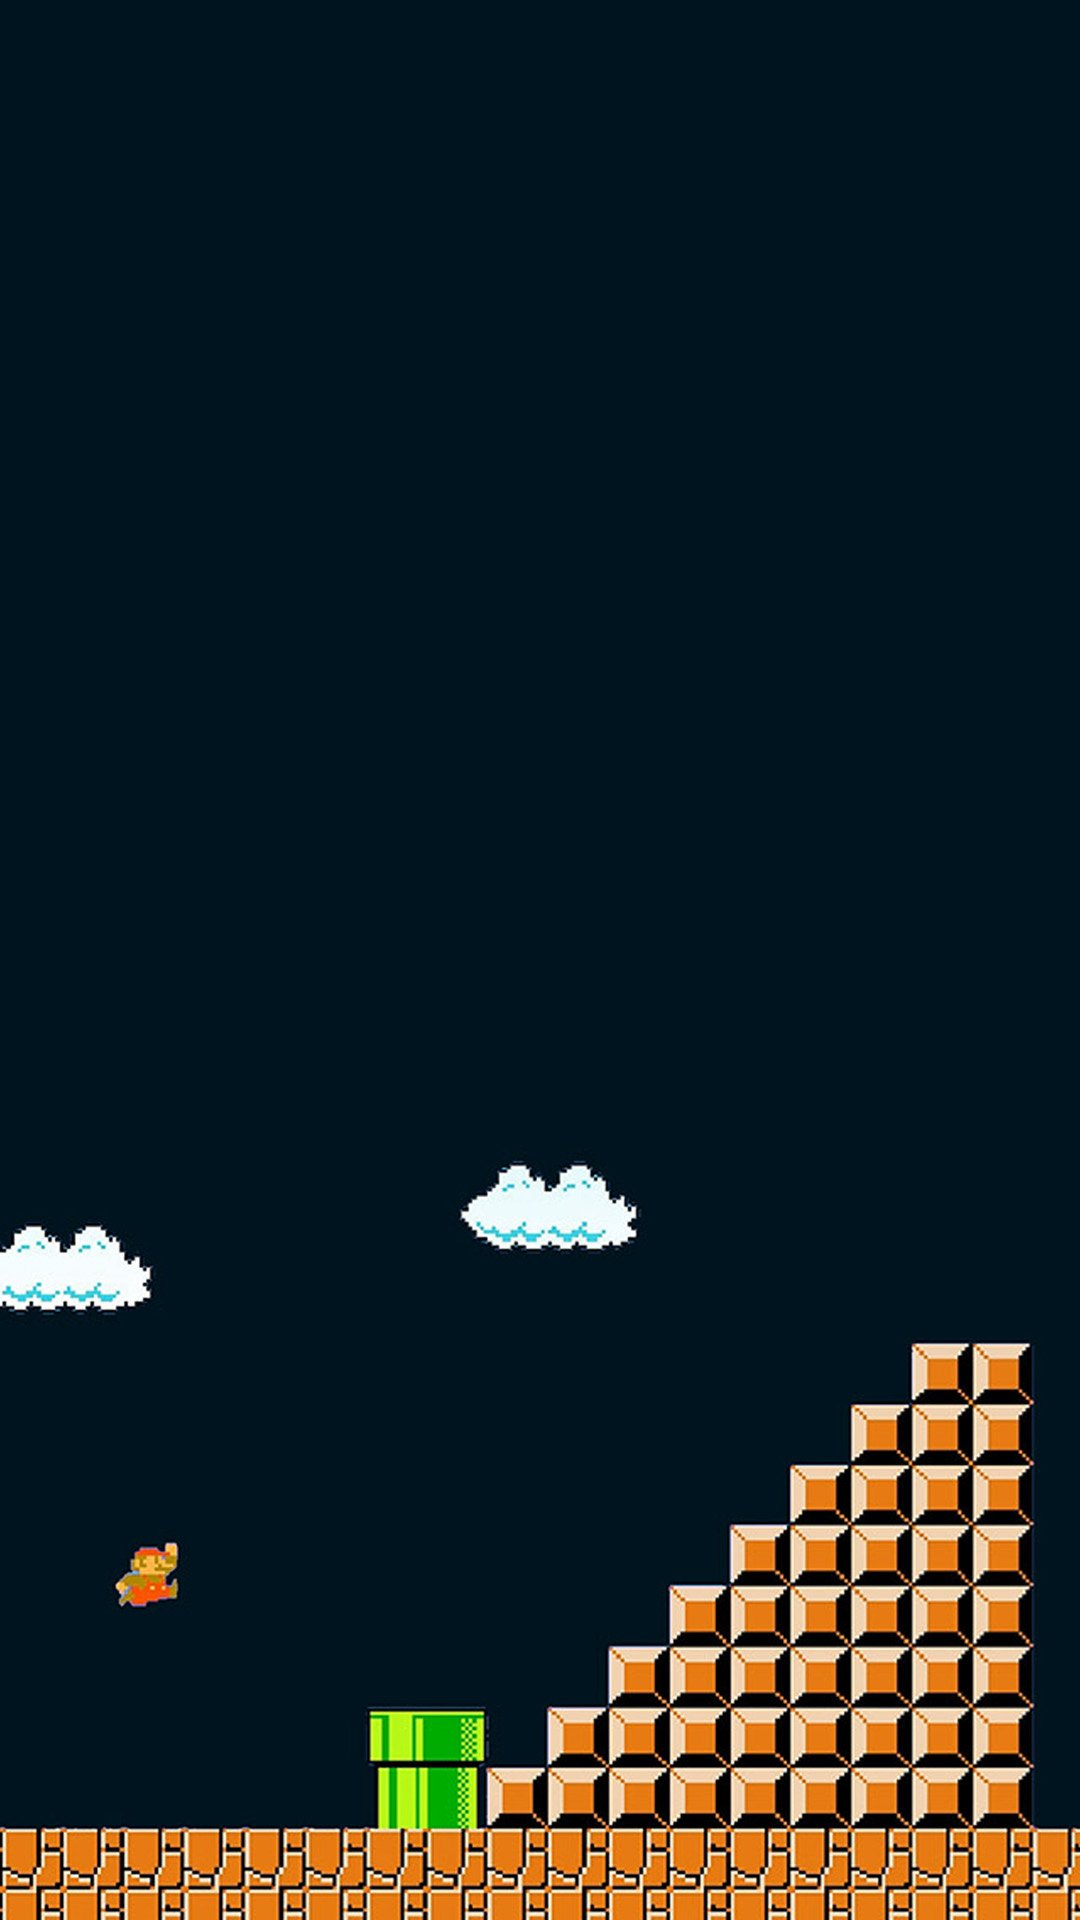 Free Download Bit Video Game Wallpapers For Iphone And Ipad